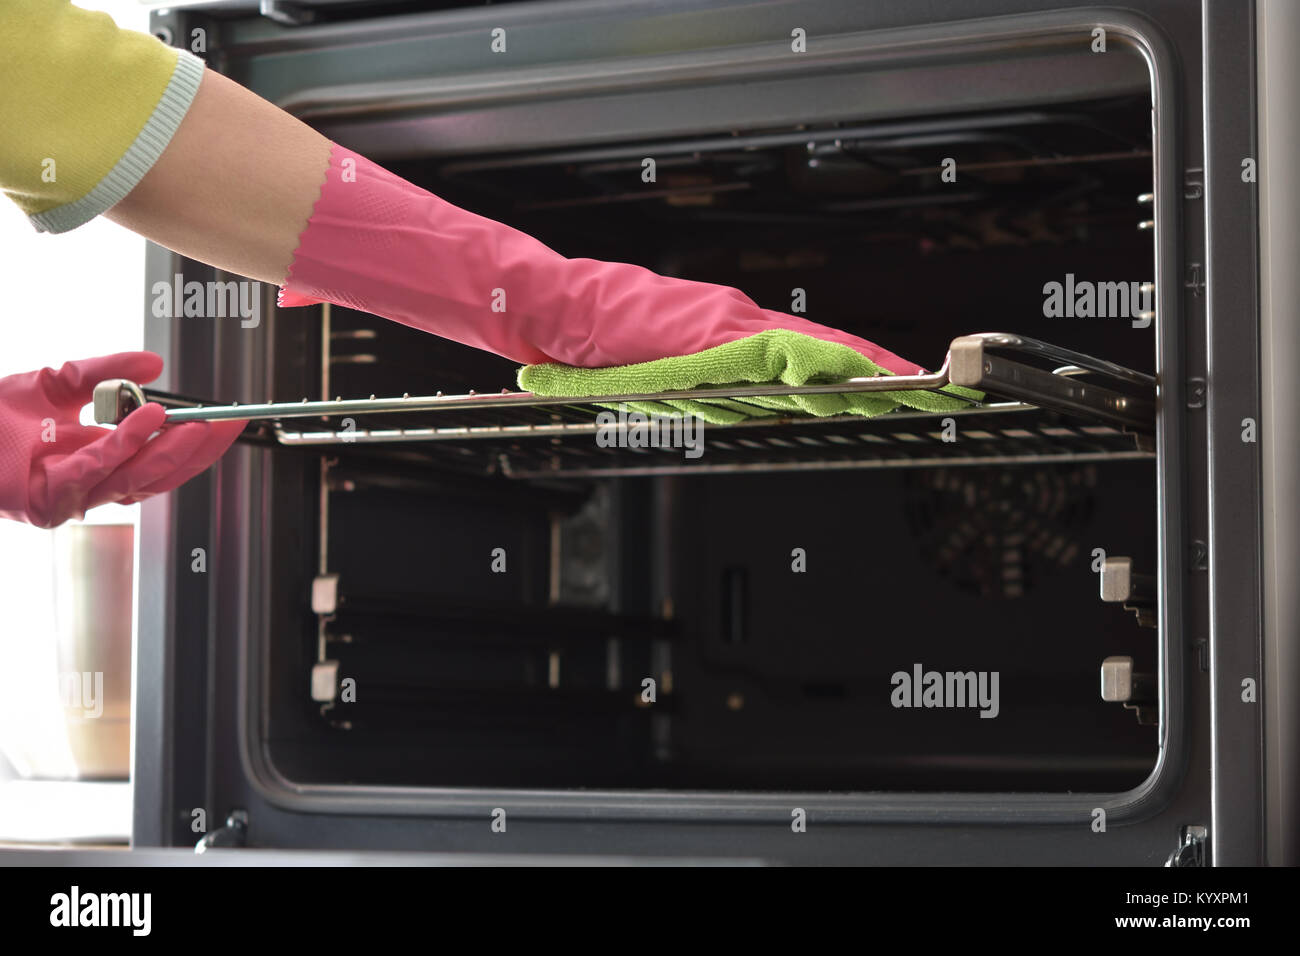 Cleaning the oven. Woman's hand in household cleaning gloves cleans oven inside. Clean oven in kitchen. - Stock Image